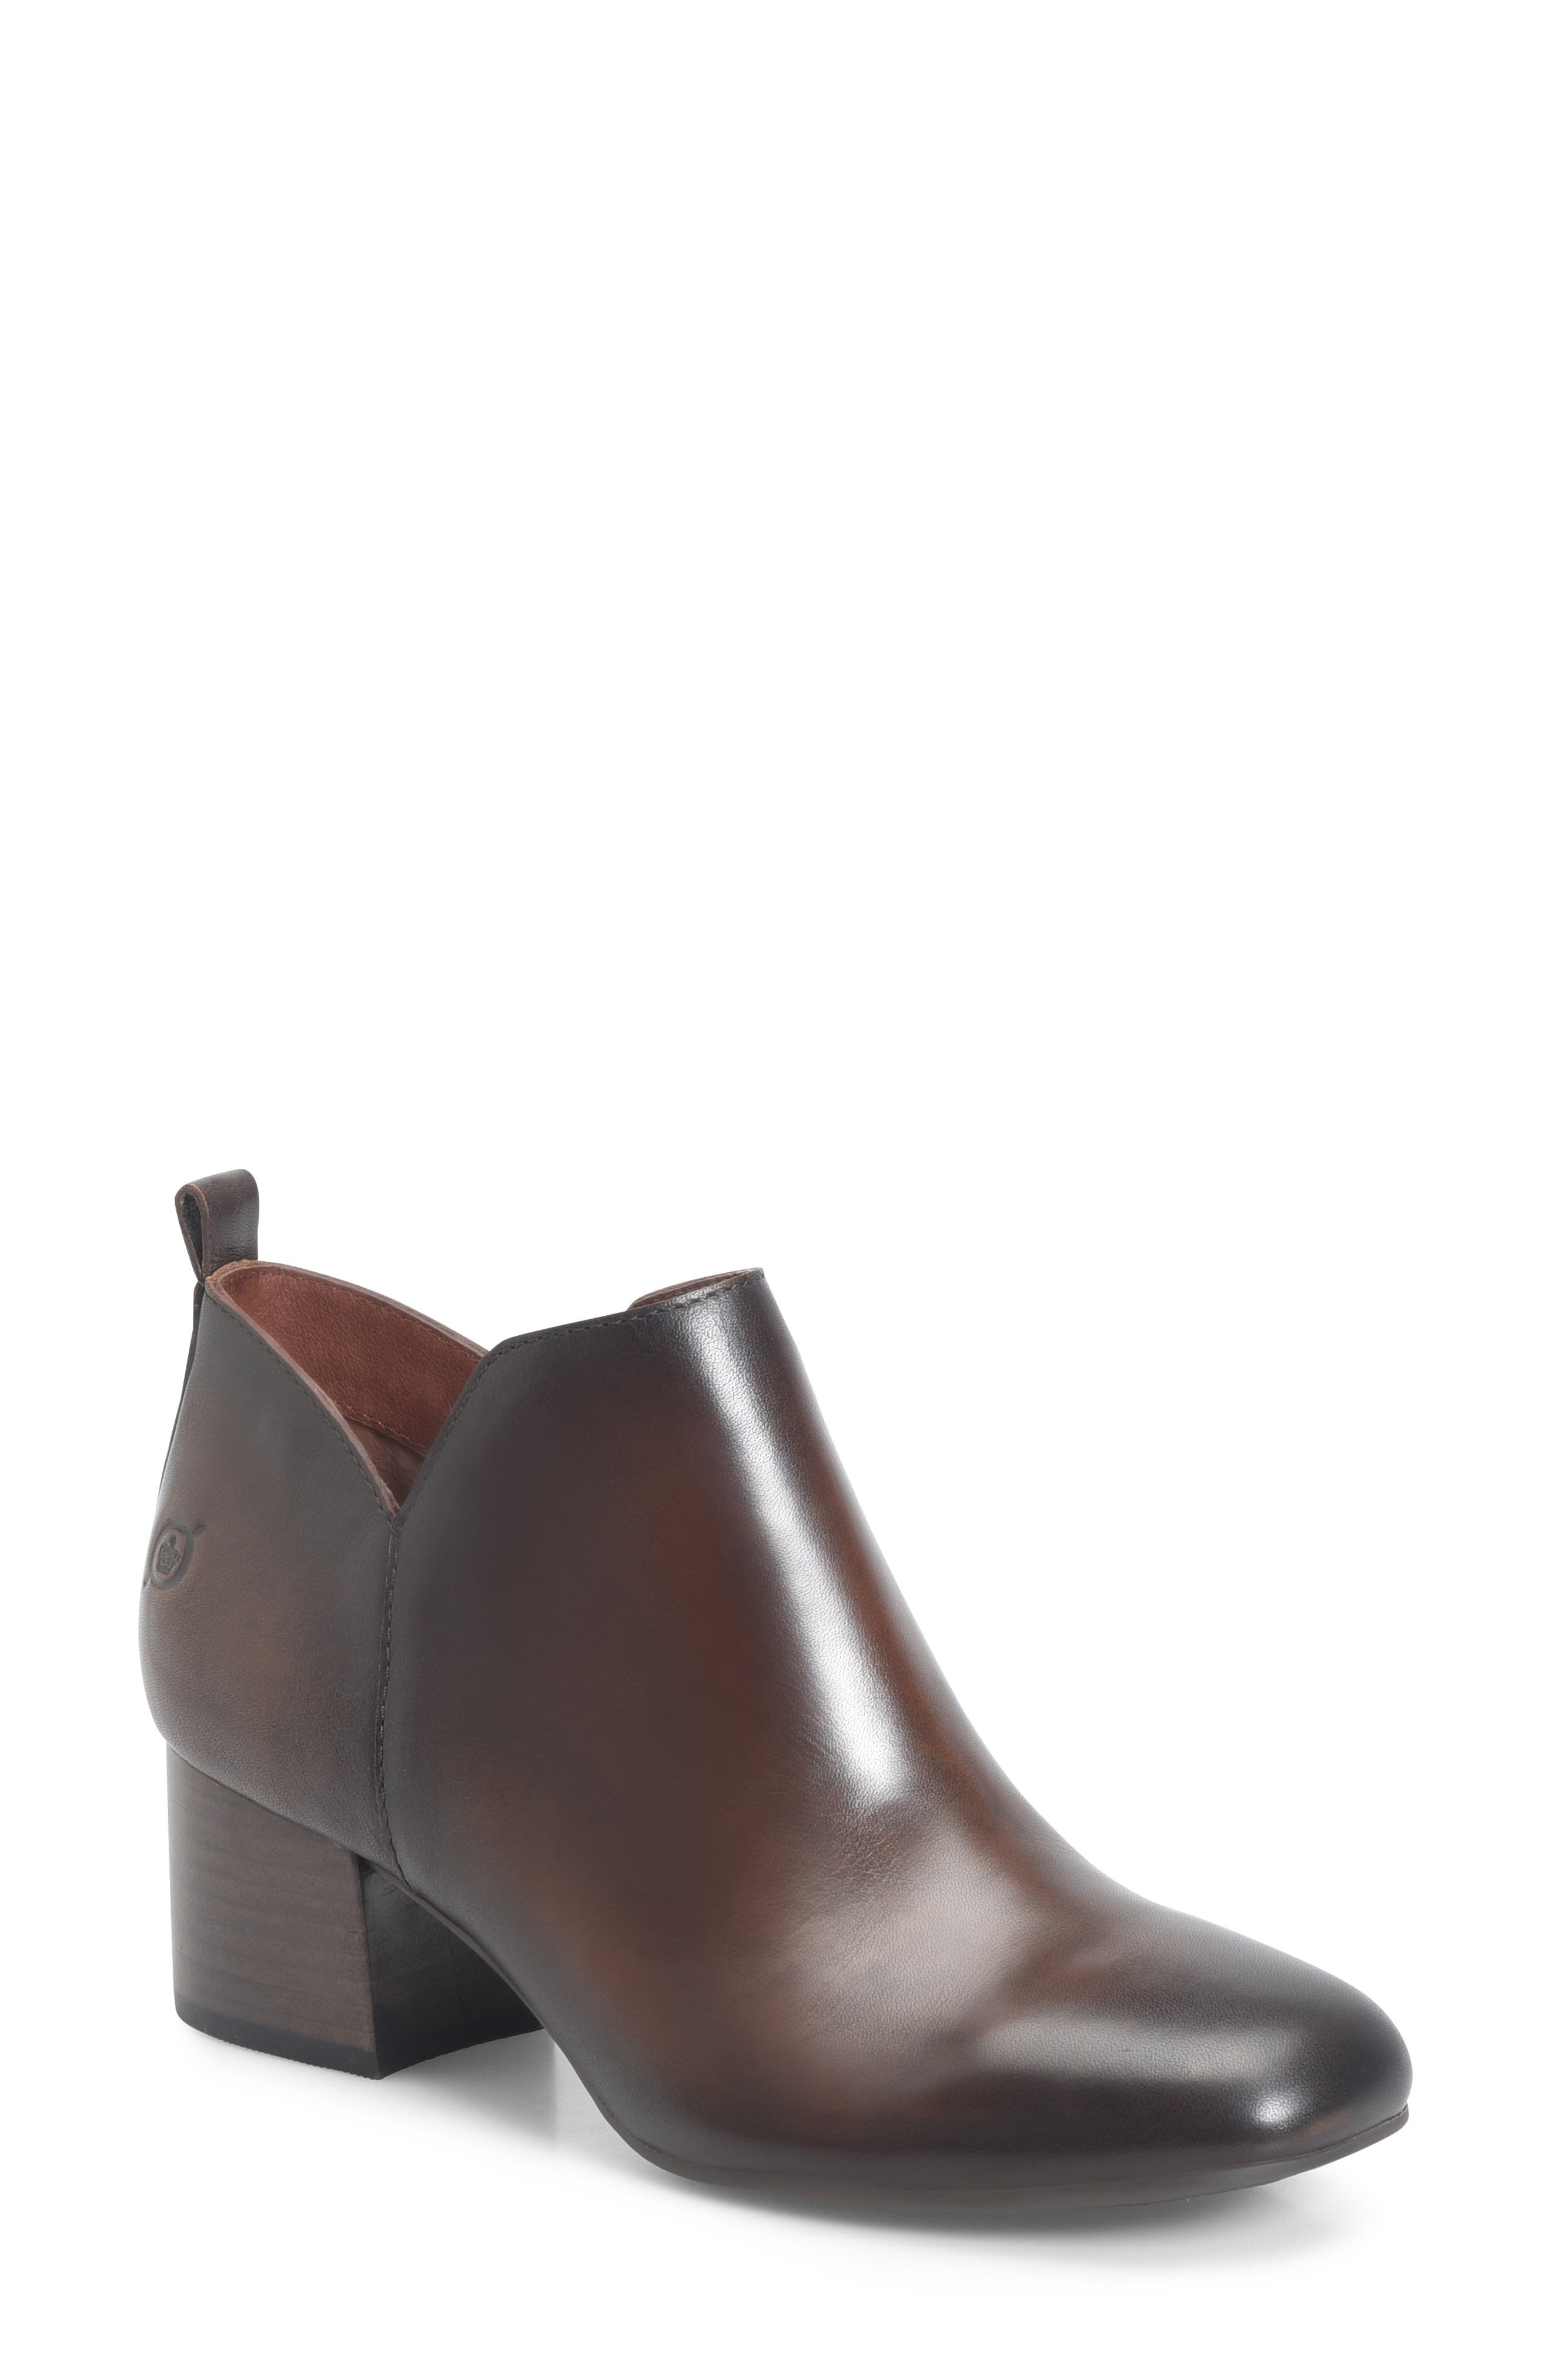 Aneto Bootie,                         Main,                         color, BROWN/ BROWN LEATHER